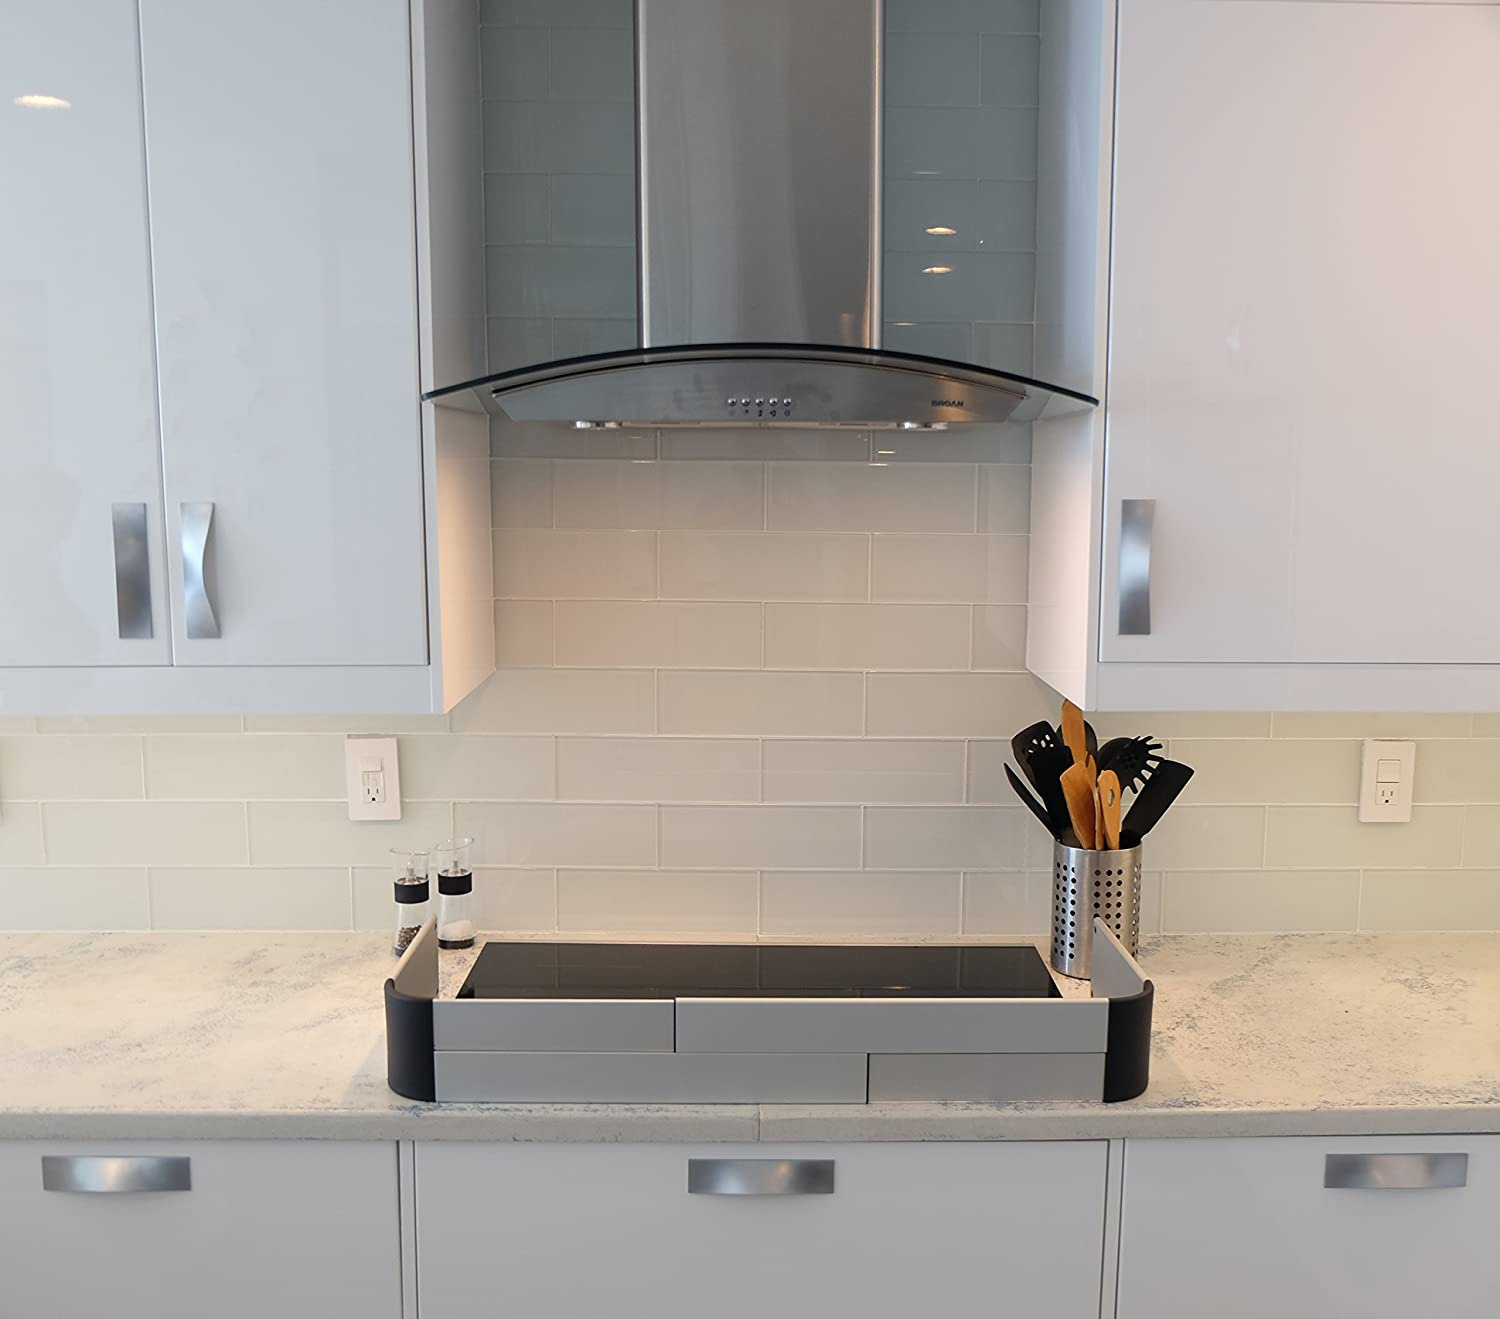 Easy to Install Complements Modern Kitchen Designs Protects from Front /& Sides Quick Removal for Cleaning QDOS ADHESIVE ALUMINUM STOVE GUARD Fits Cooktops /& Most Freestanding Stoves